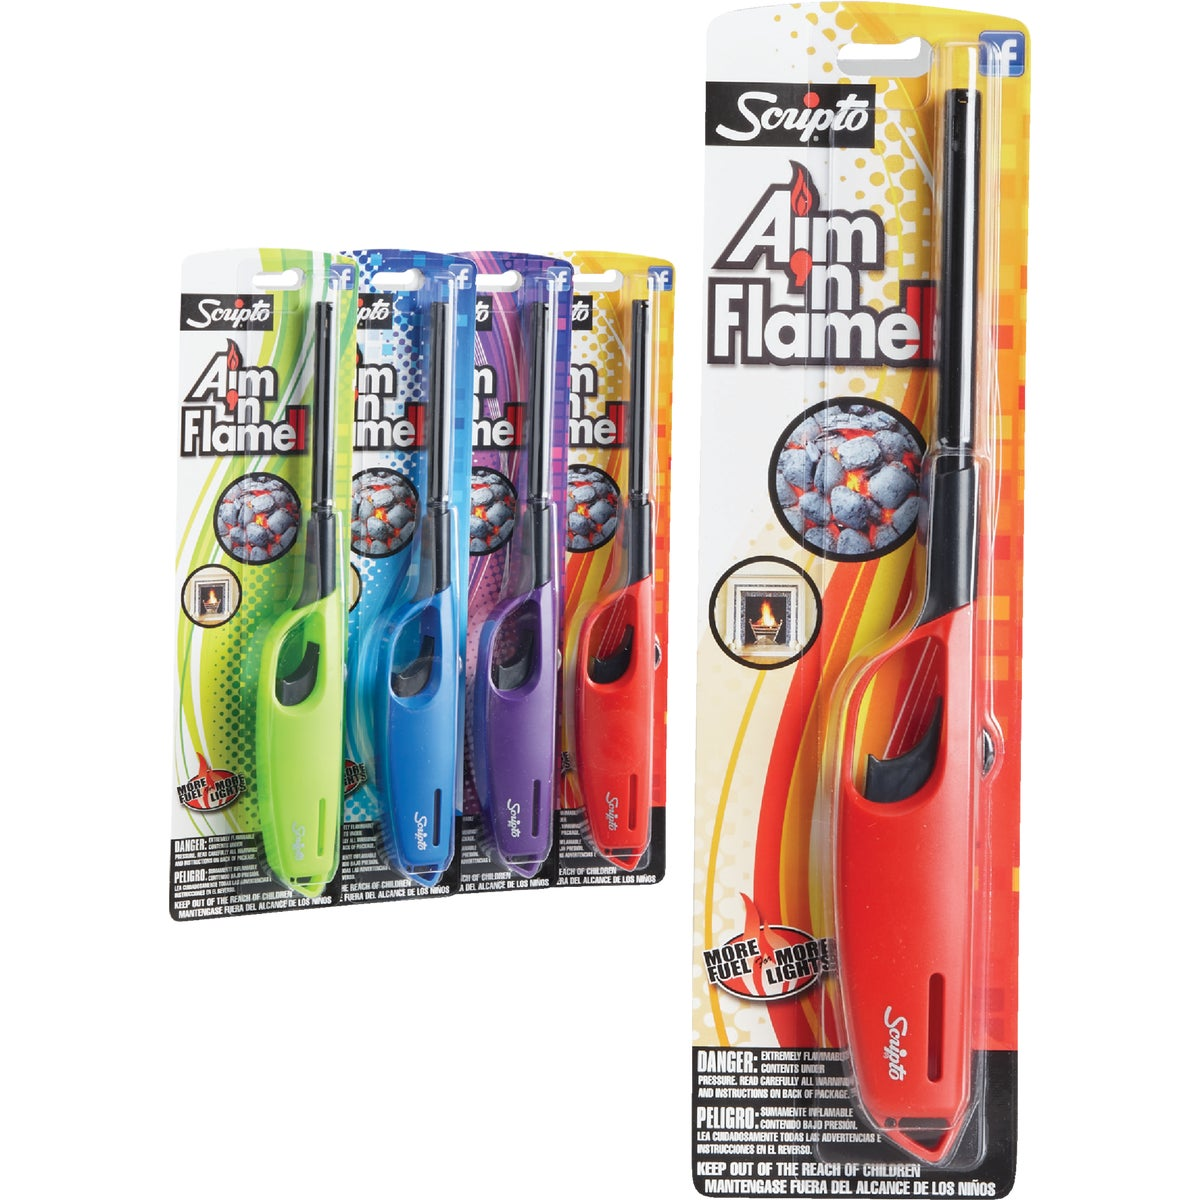 AIM-N-FLAME UTE LIGHTER - HC12CR by Calico Brands